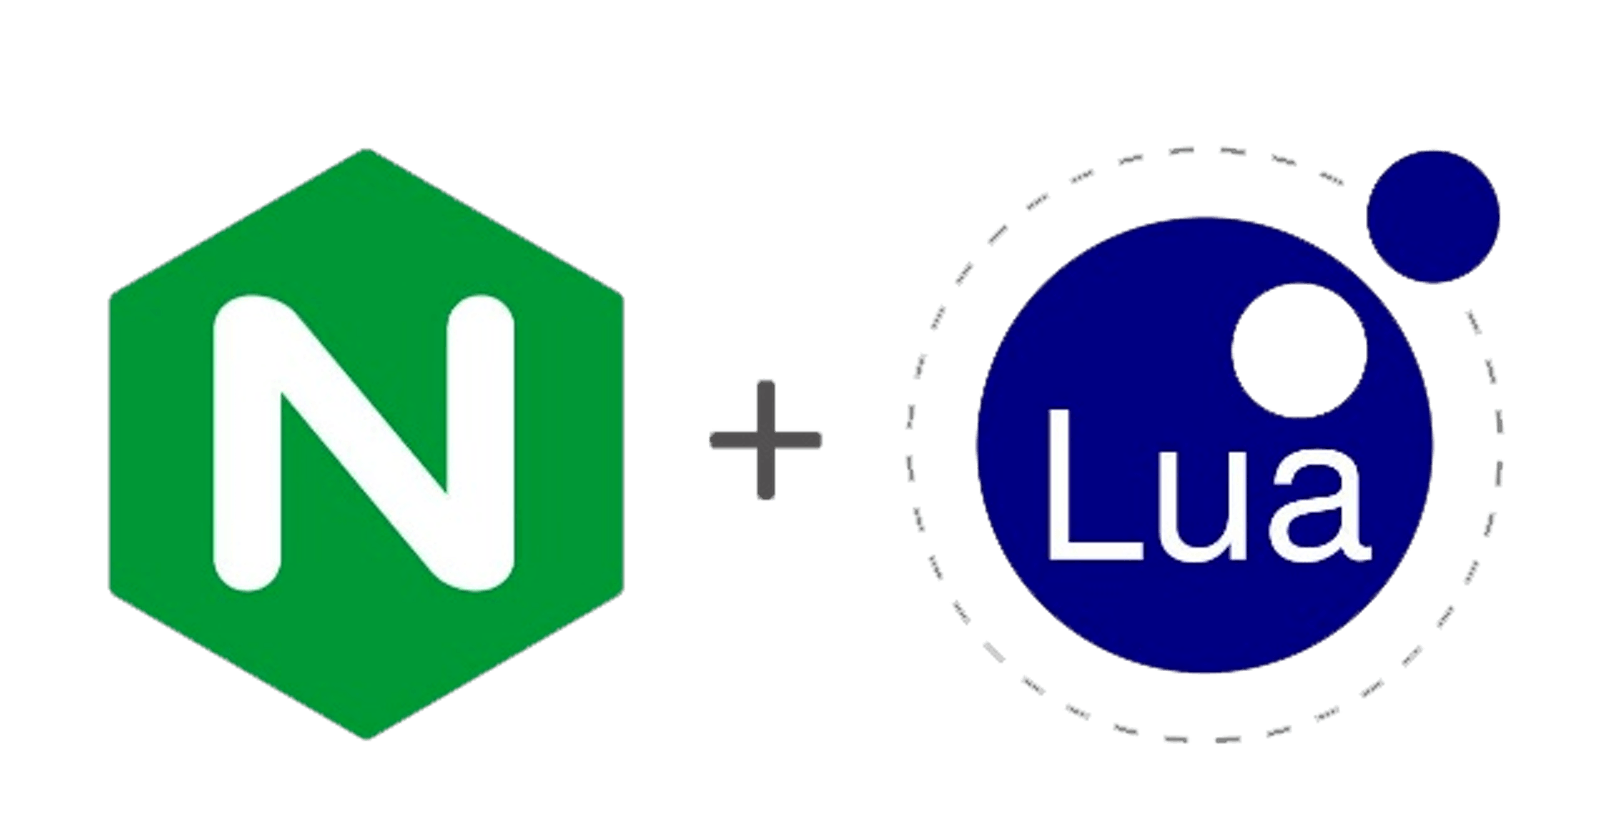 Use nginx as JWT authentication middleware